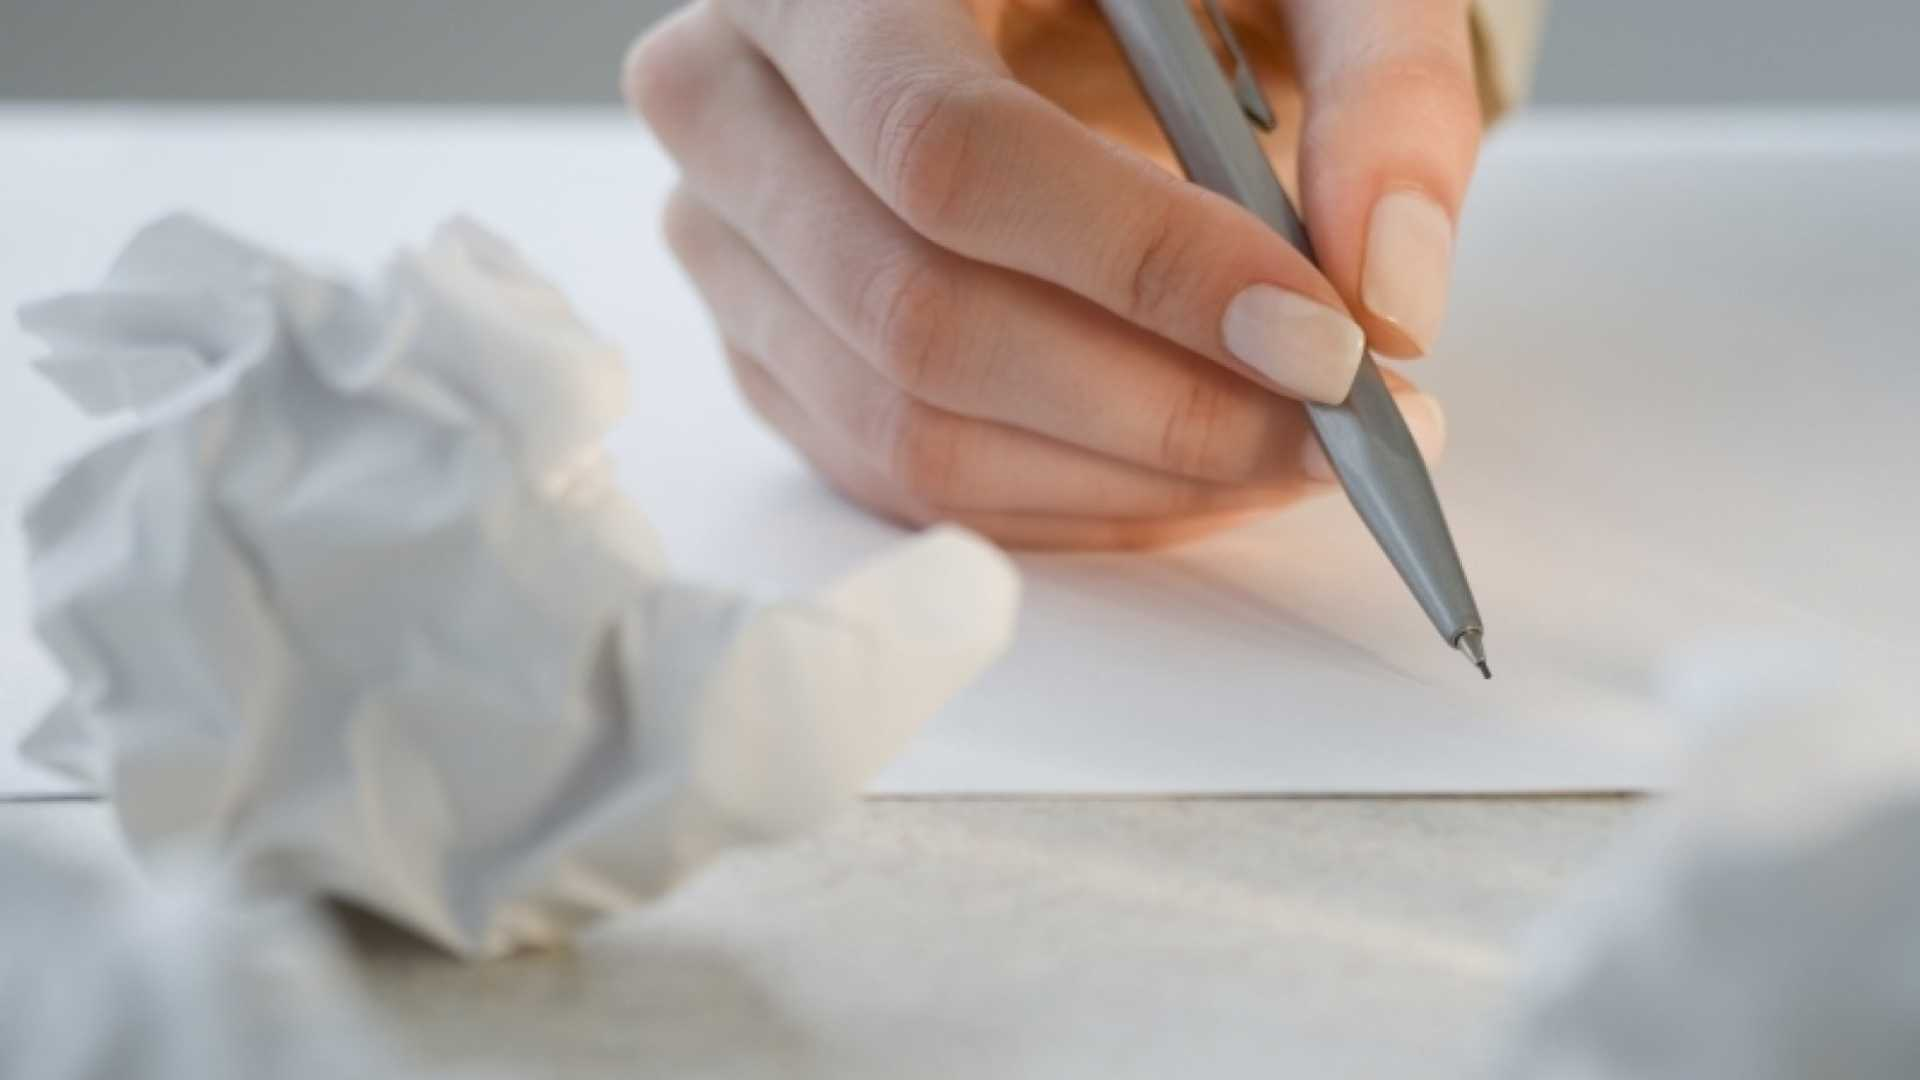 13Surprisingly Common Mistakes That Make Your Writing Look Bad